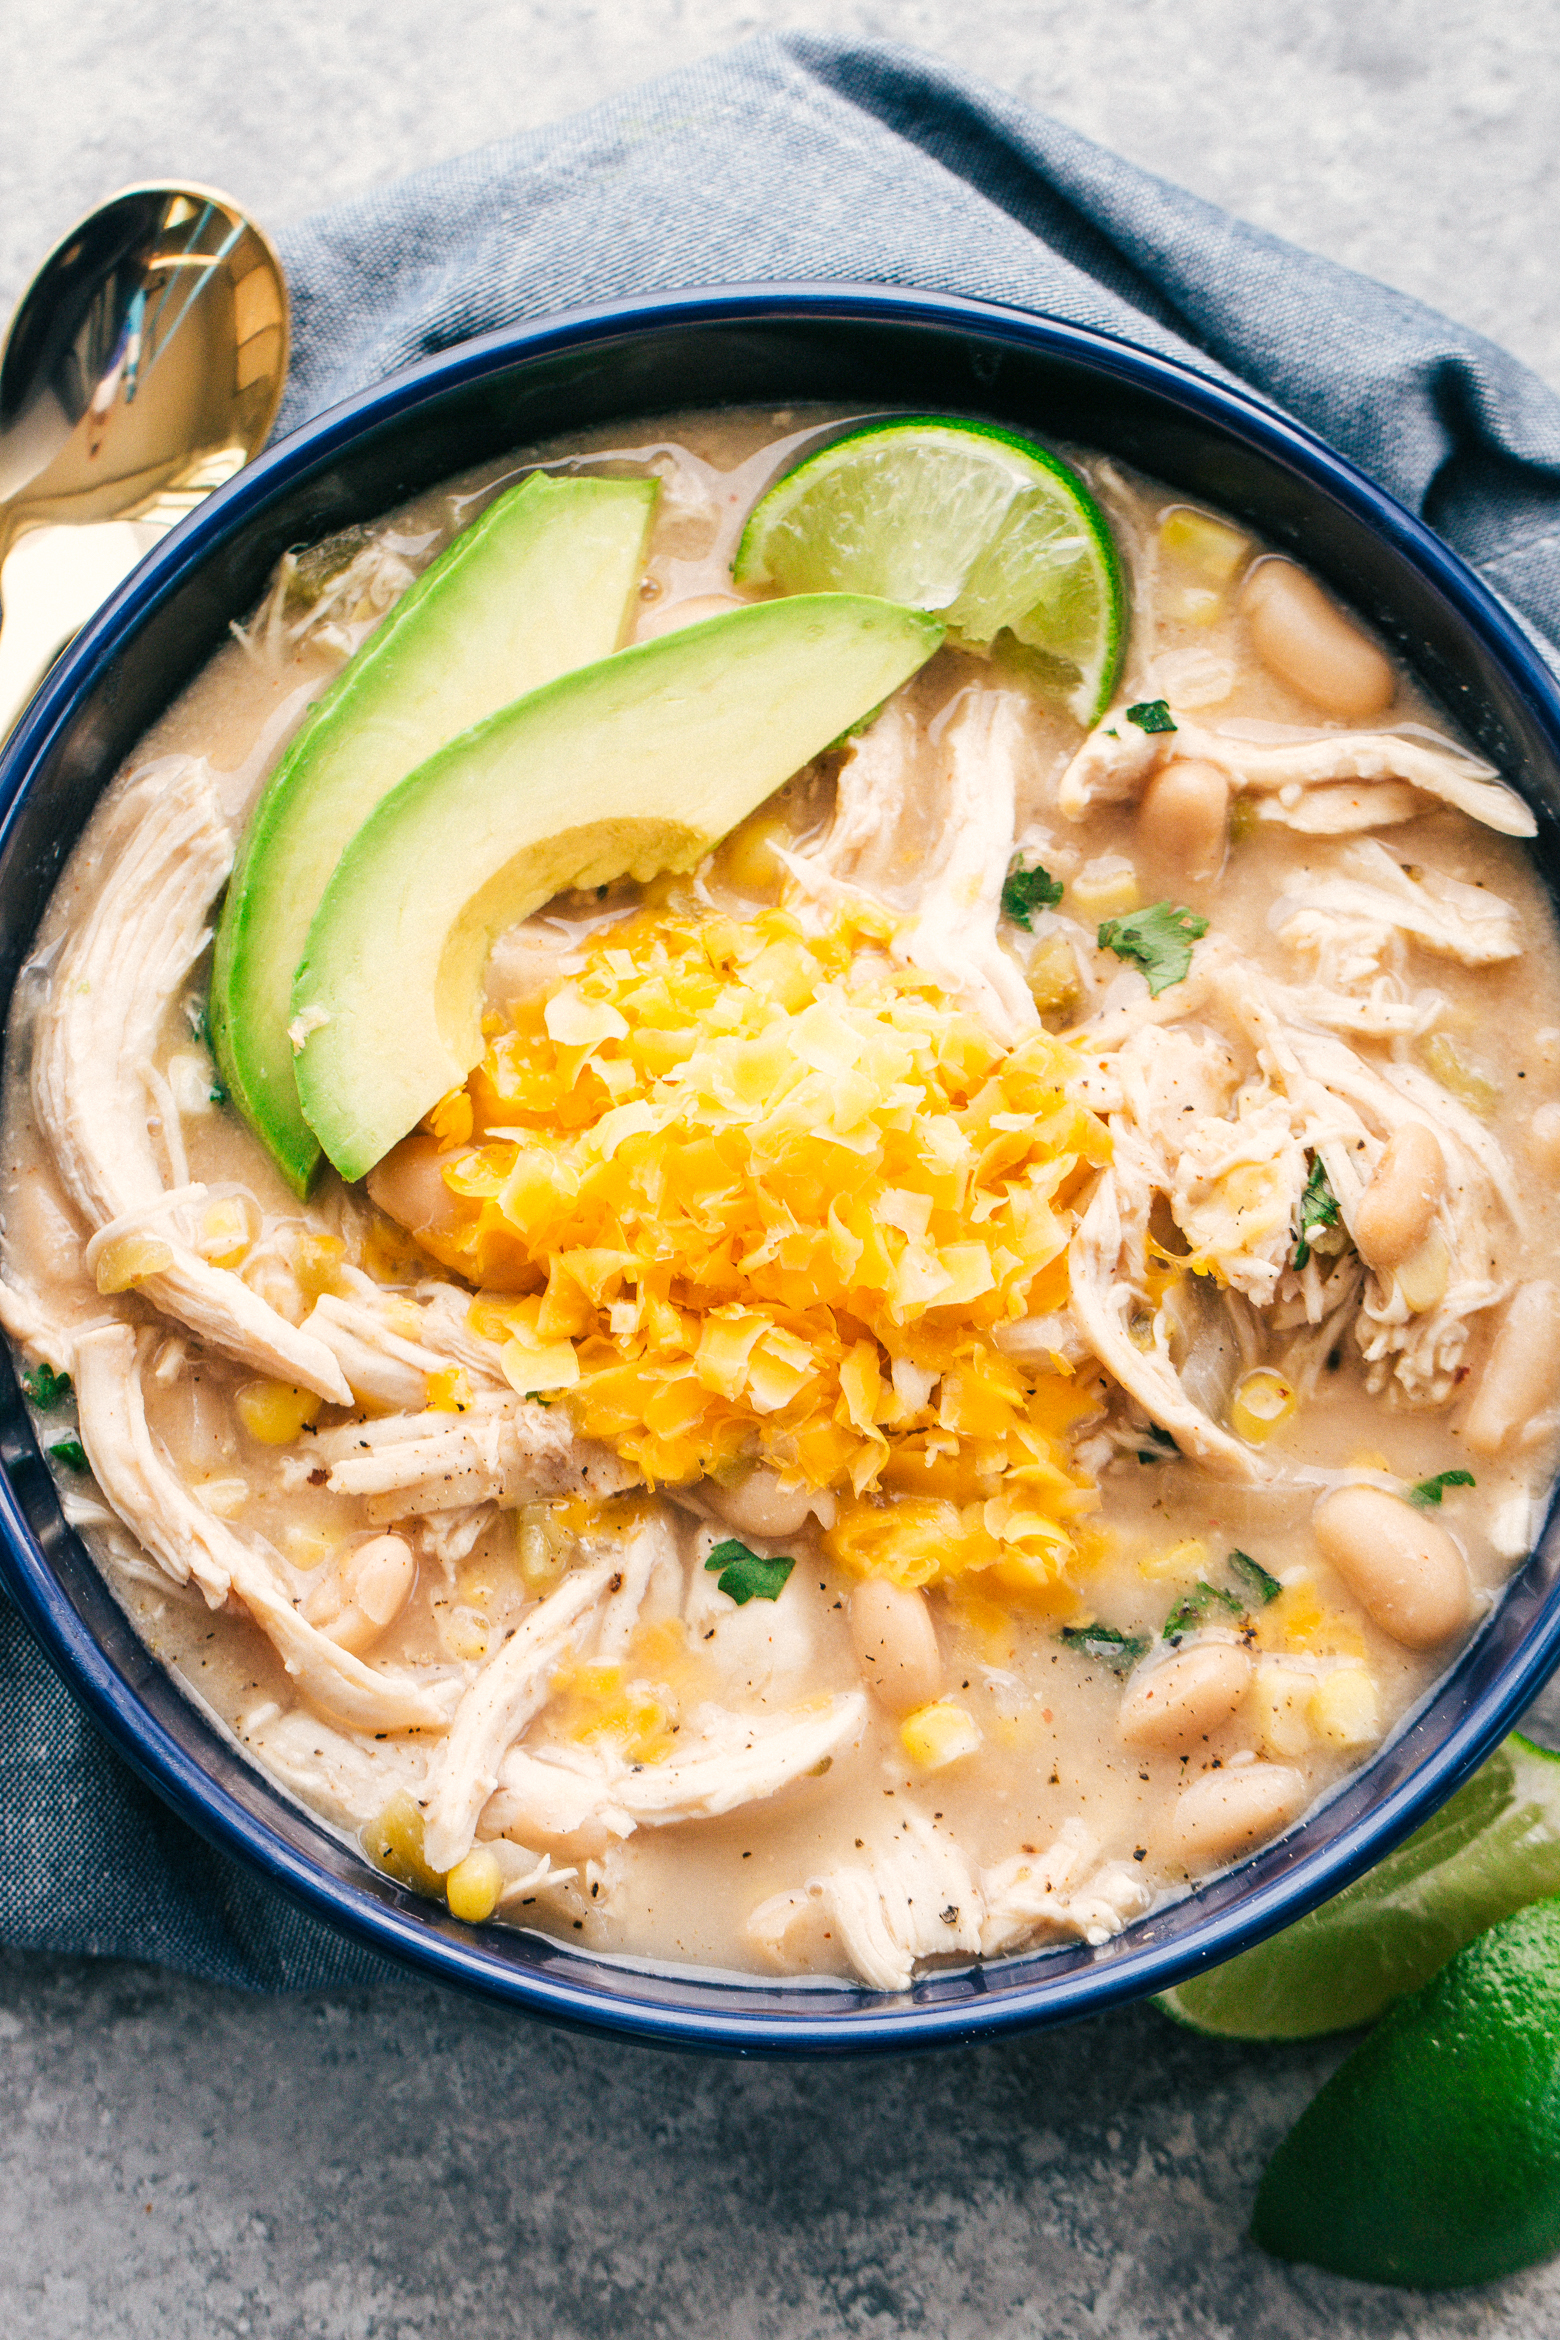 white bean chicken chili recipe in a blue bowl on a light grey background served with a gold spoon, by The Food Cafe.